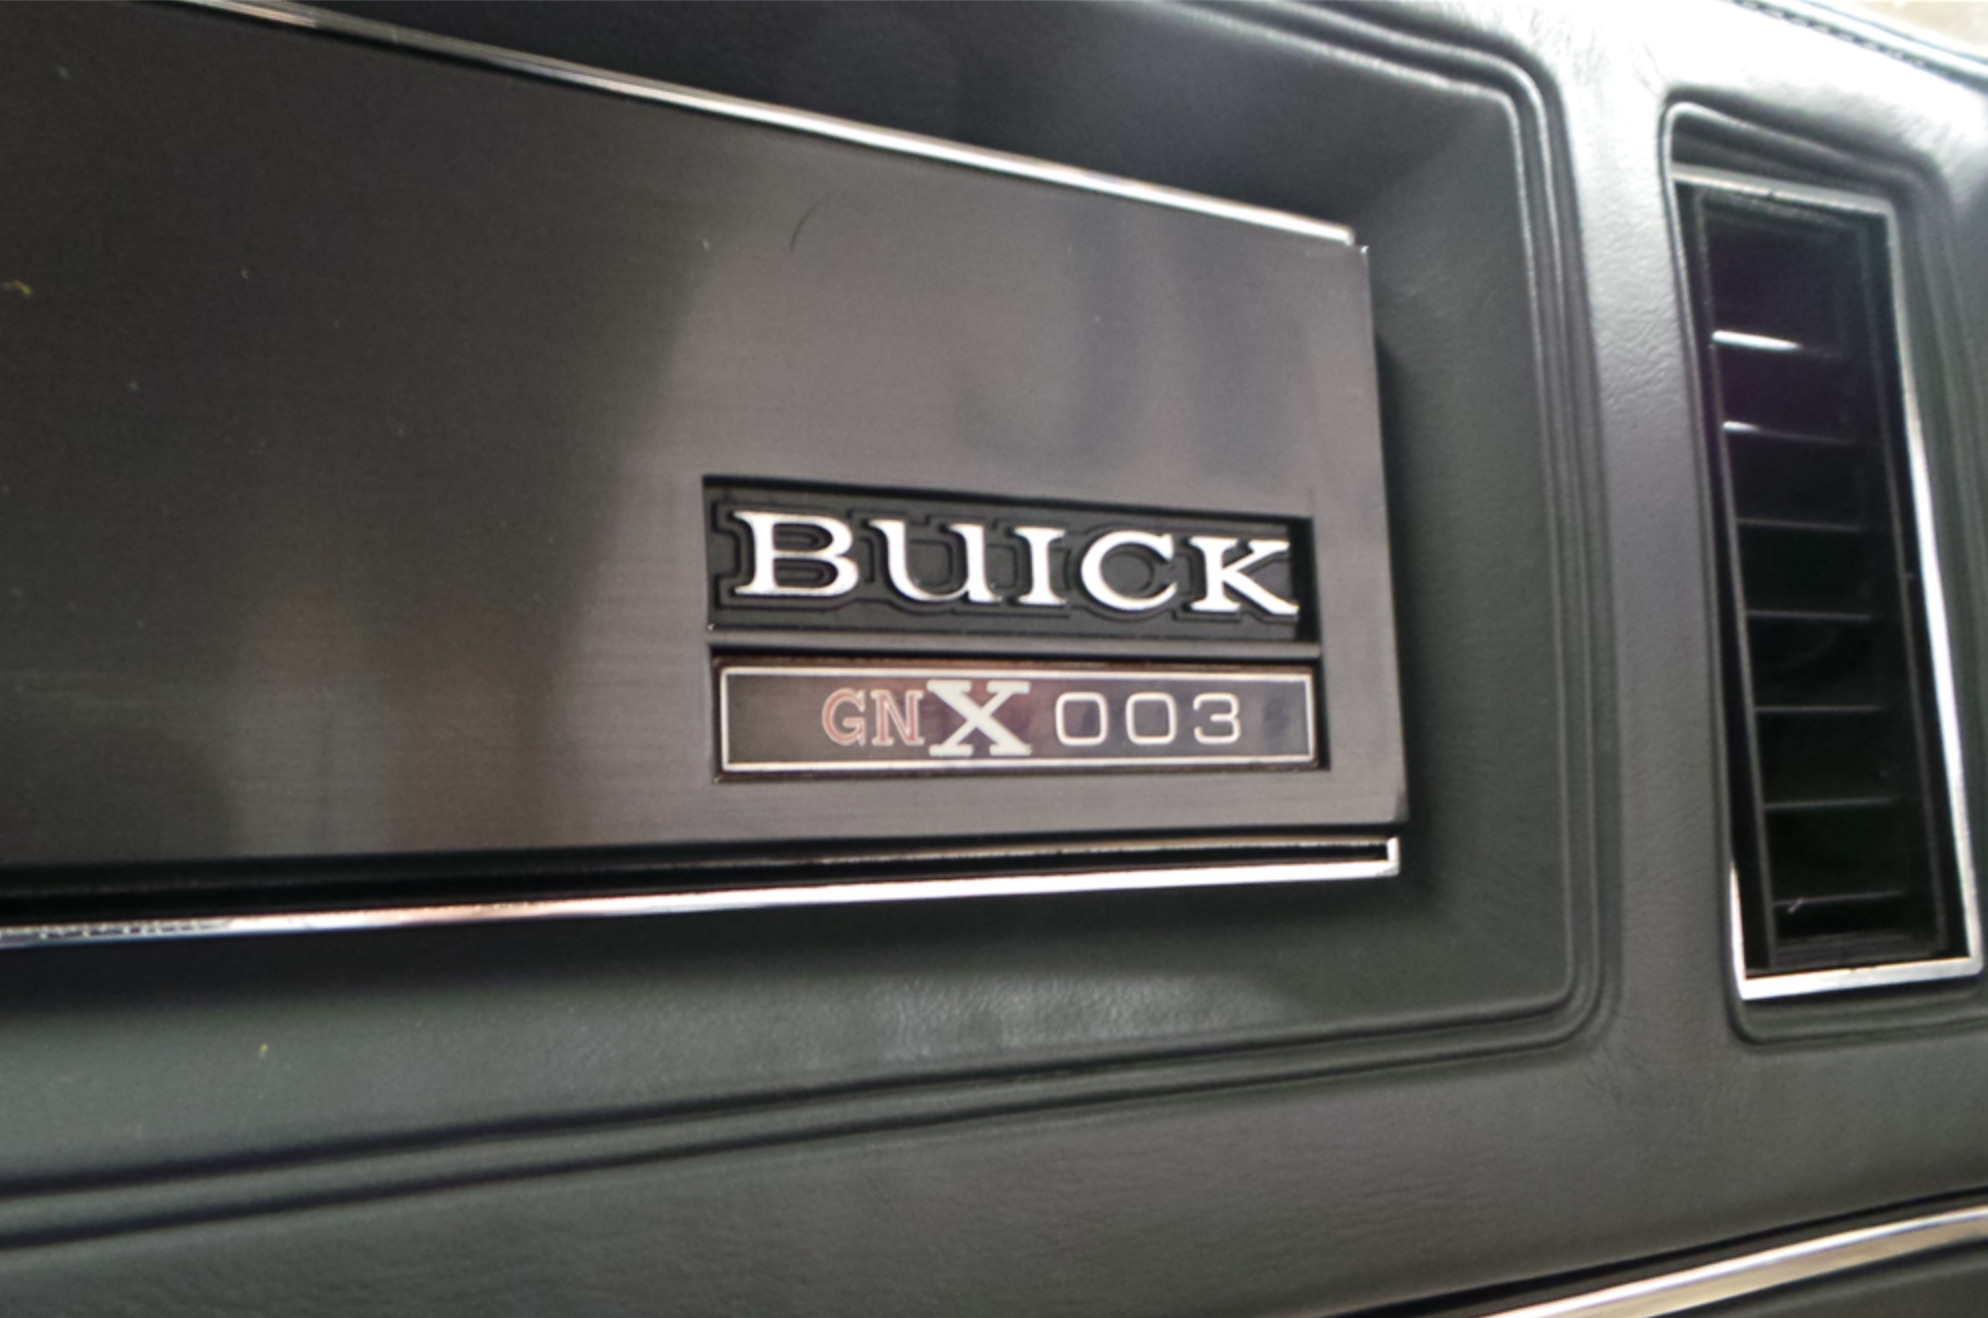 First Shelby GT350 prototype and third Buick Regal GNX in auctions (4)